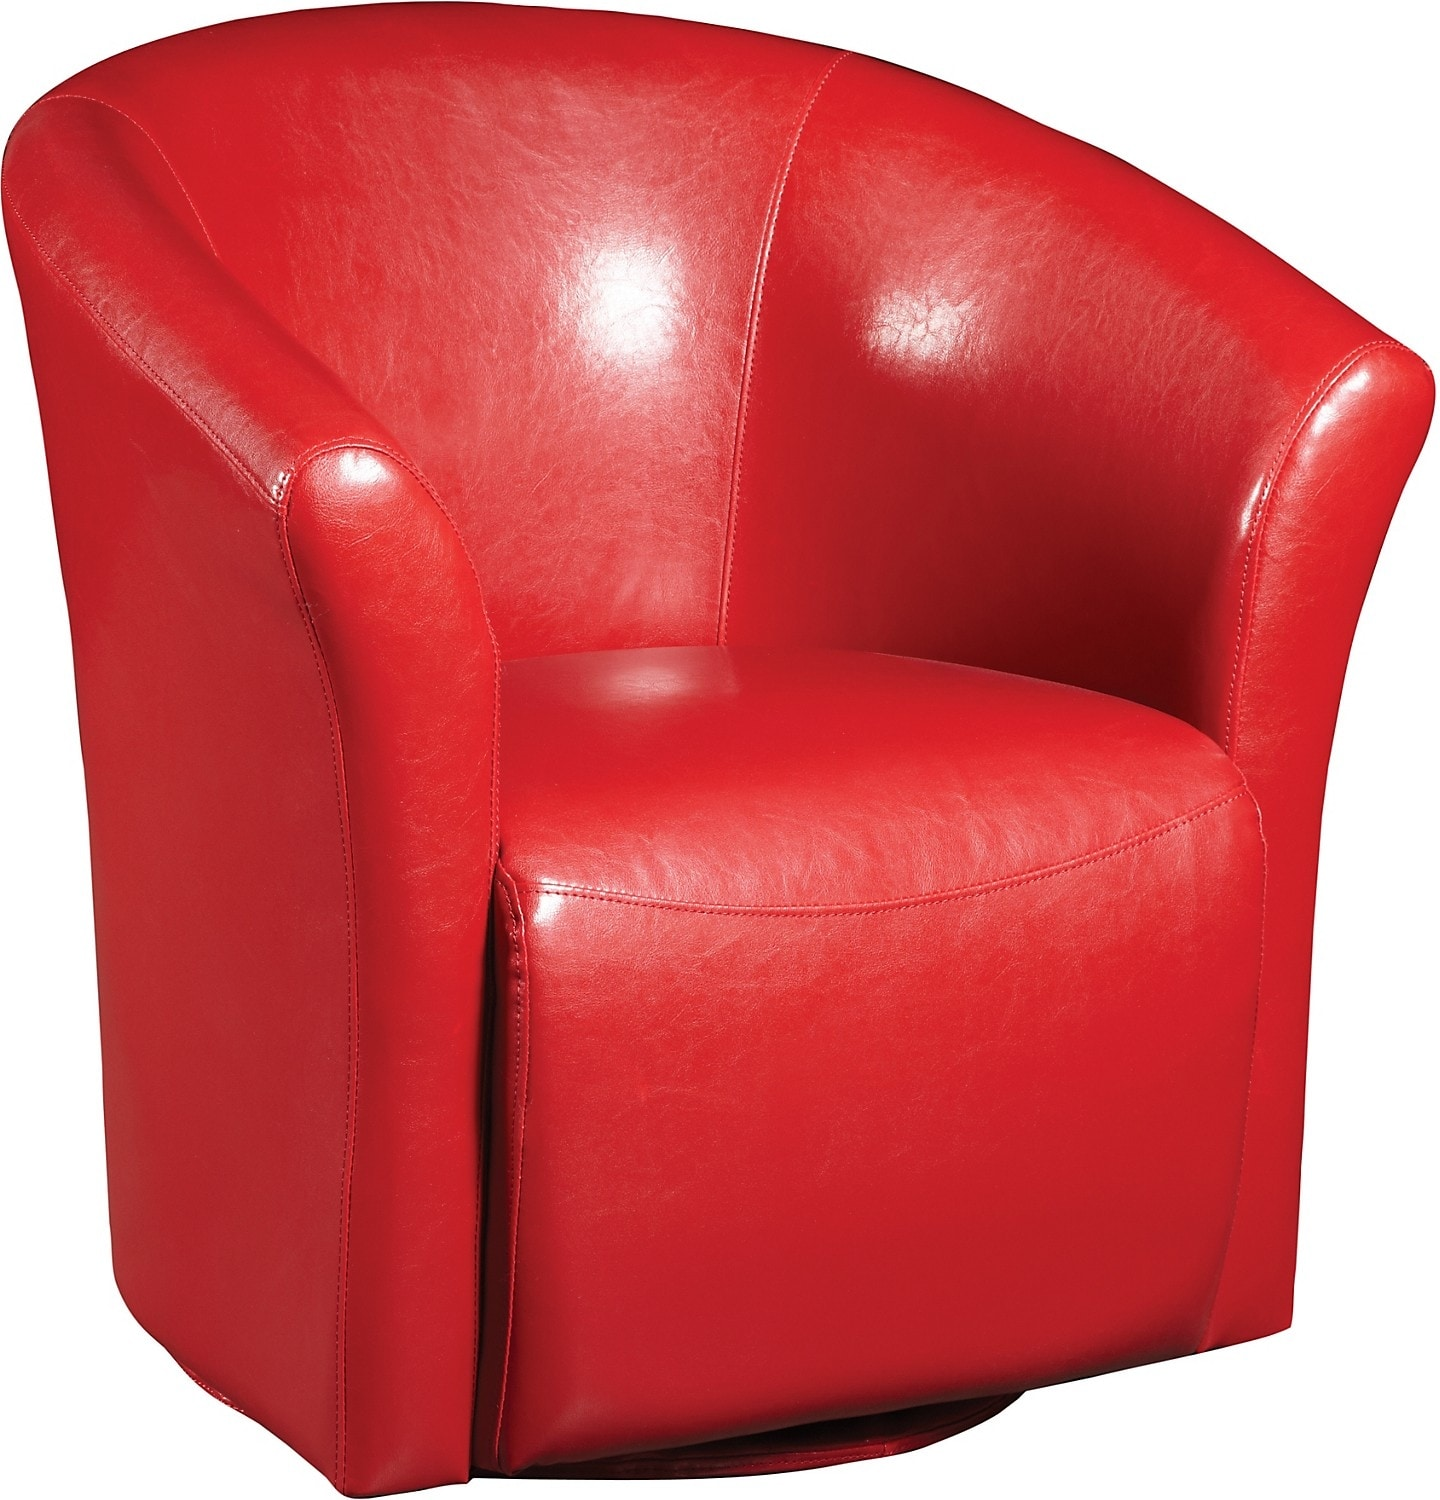 Ethan red faux leather swivel accent chair the brick for Red swivel chairs for living room